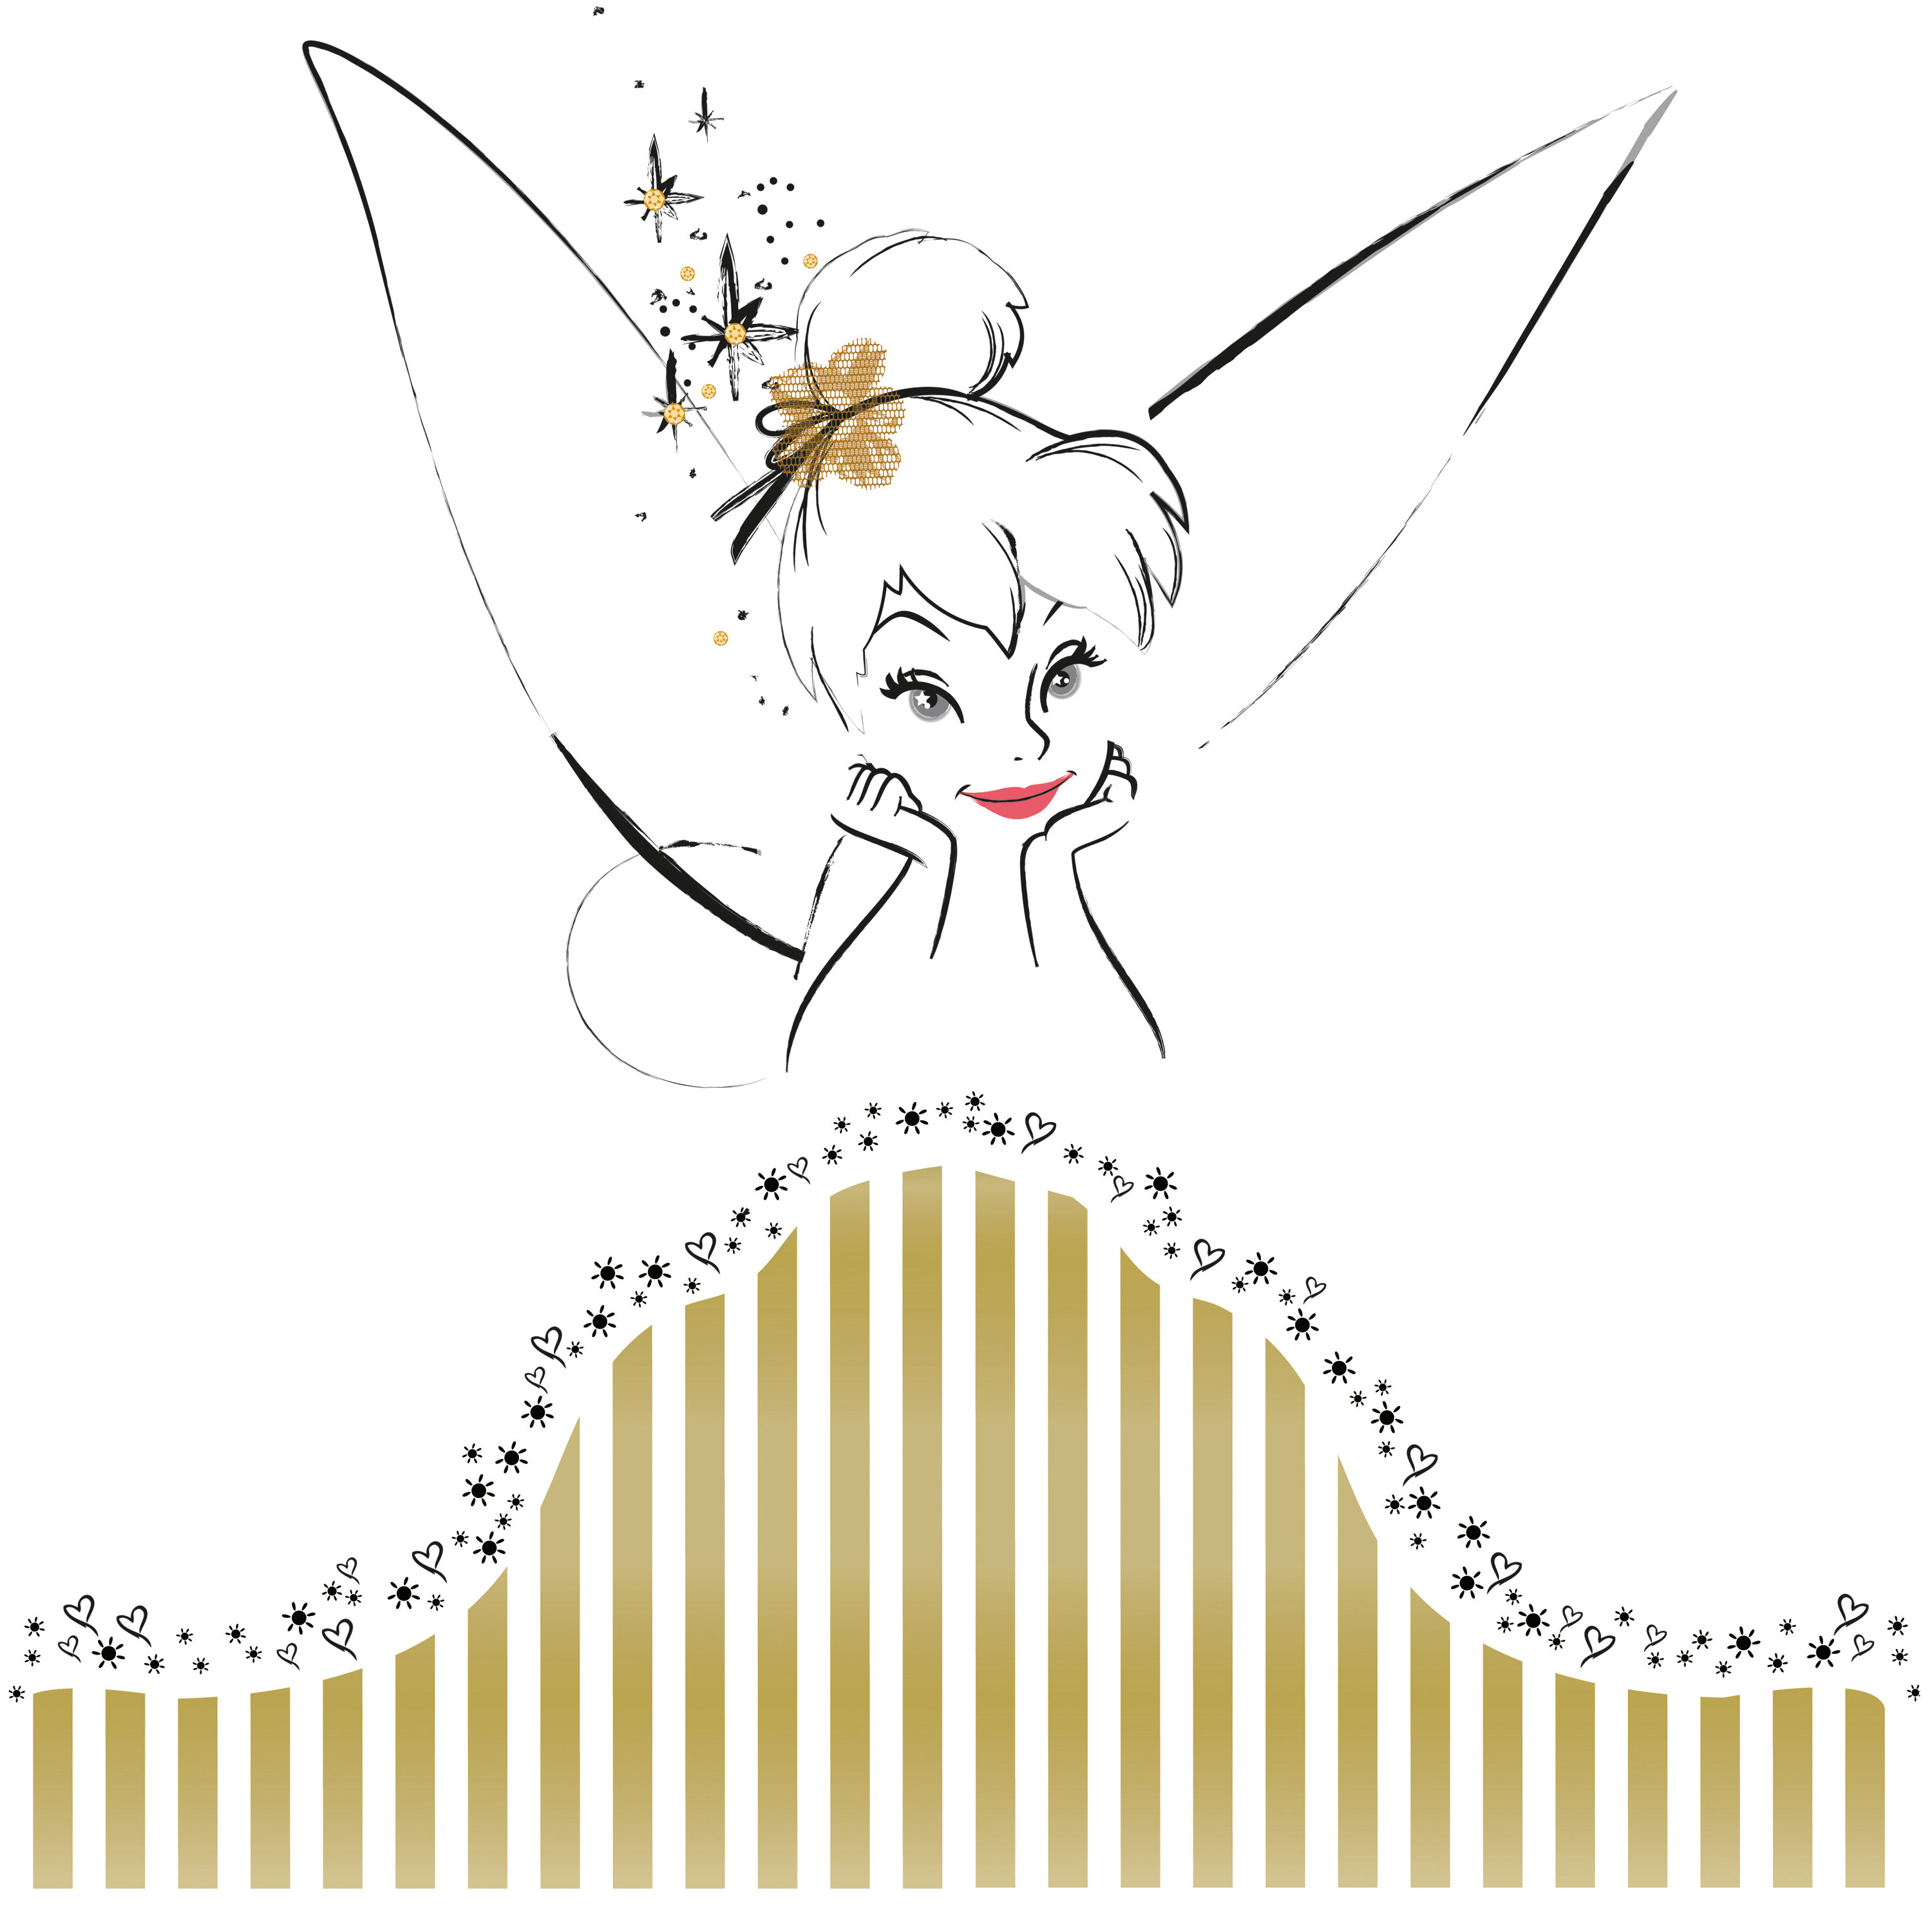 Room Mates Popular Characters Disney Fairies Tinkerbell Headboard Giant Wall Decal u0026 Reviews | Wayfair  sc 1 st  Wayfair & Room Mates Popular Characters Disney Fairies Tinkerbell Headboard ...